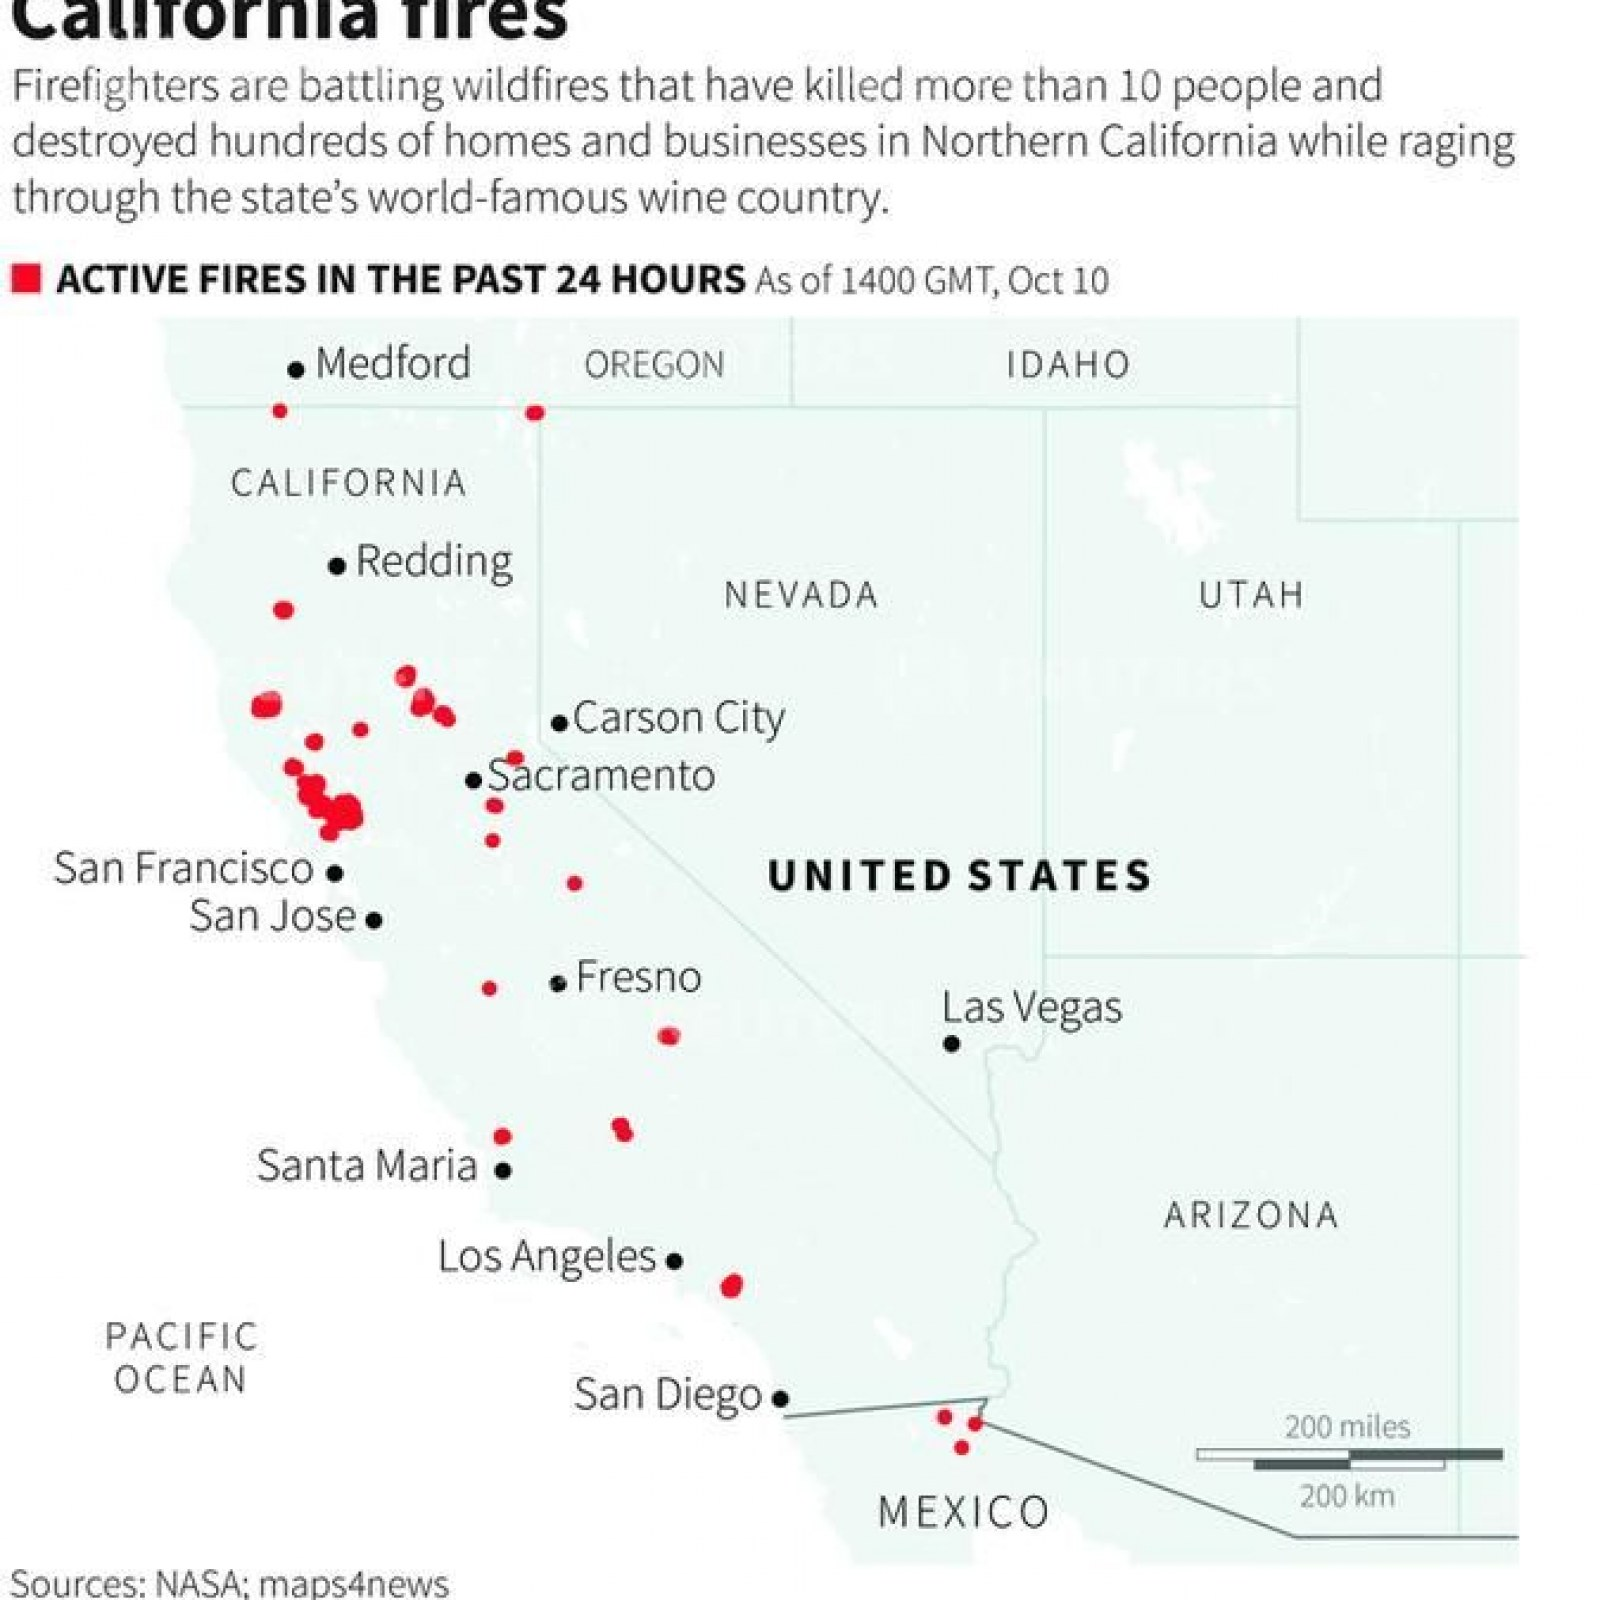 Fire Northern California Map.Napa Fire Map Napa Valley Timeline Death Toll Smoke Impact From